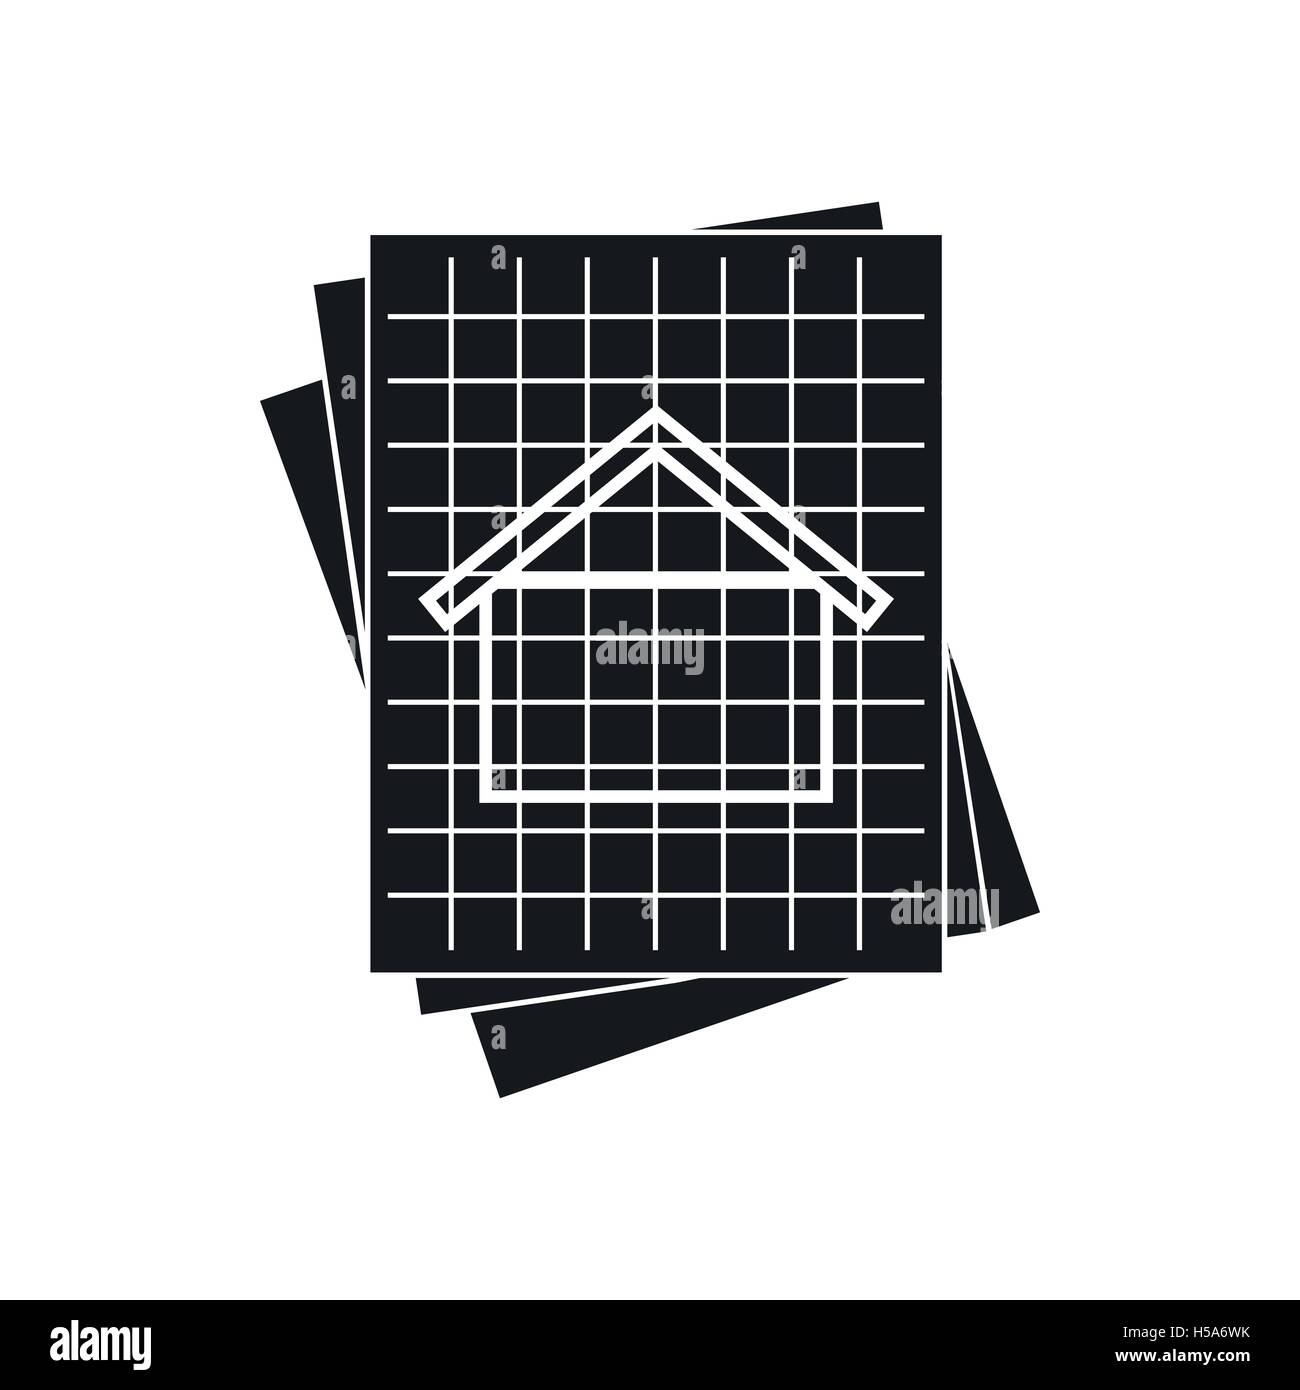 House blueprint icon simple style stock vector art illustration house blueprint icon simple style malvernweather Images